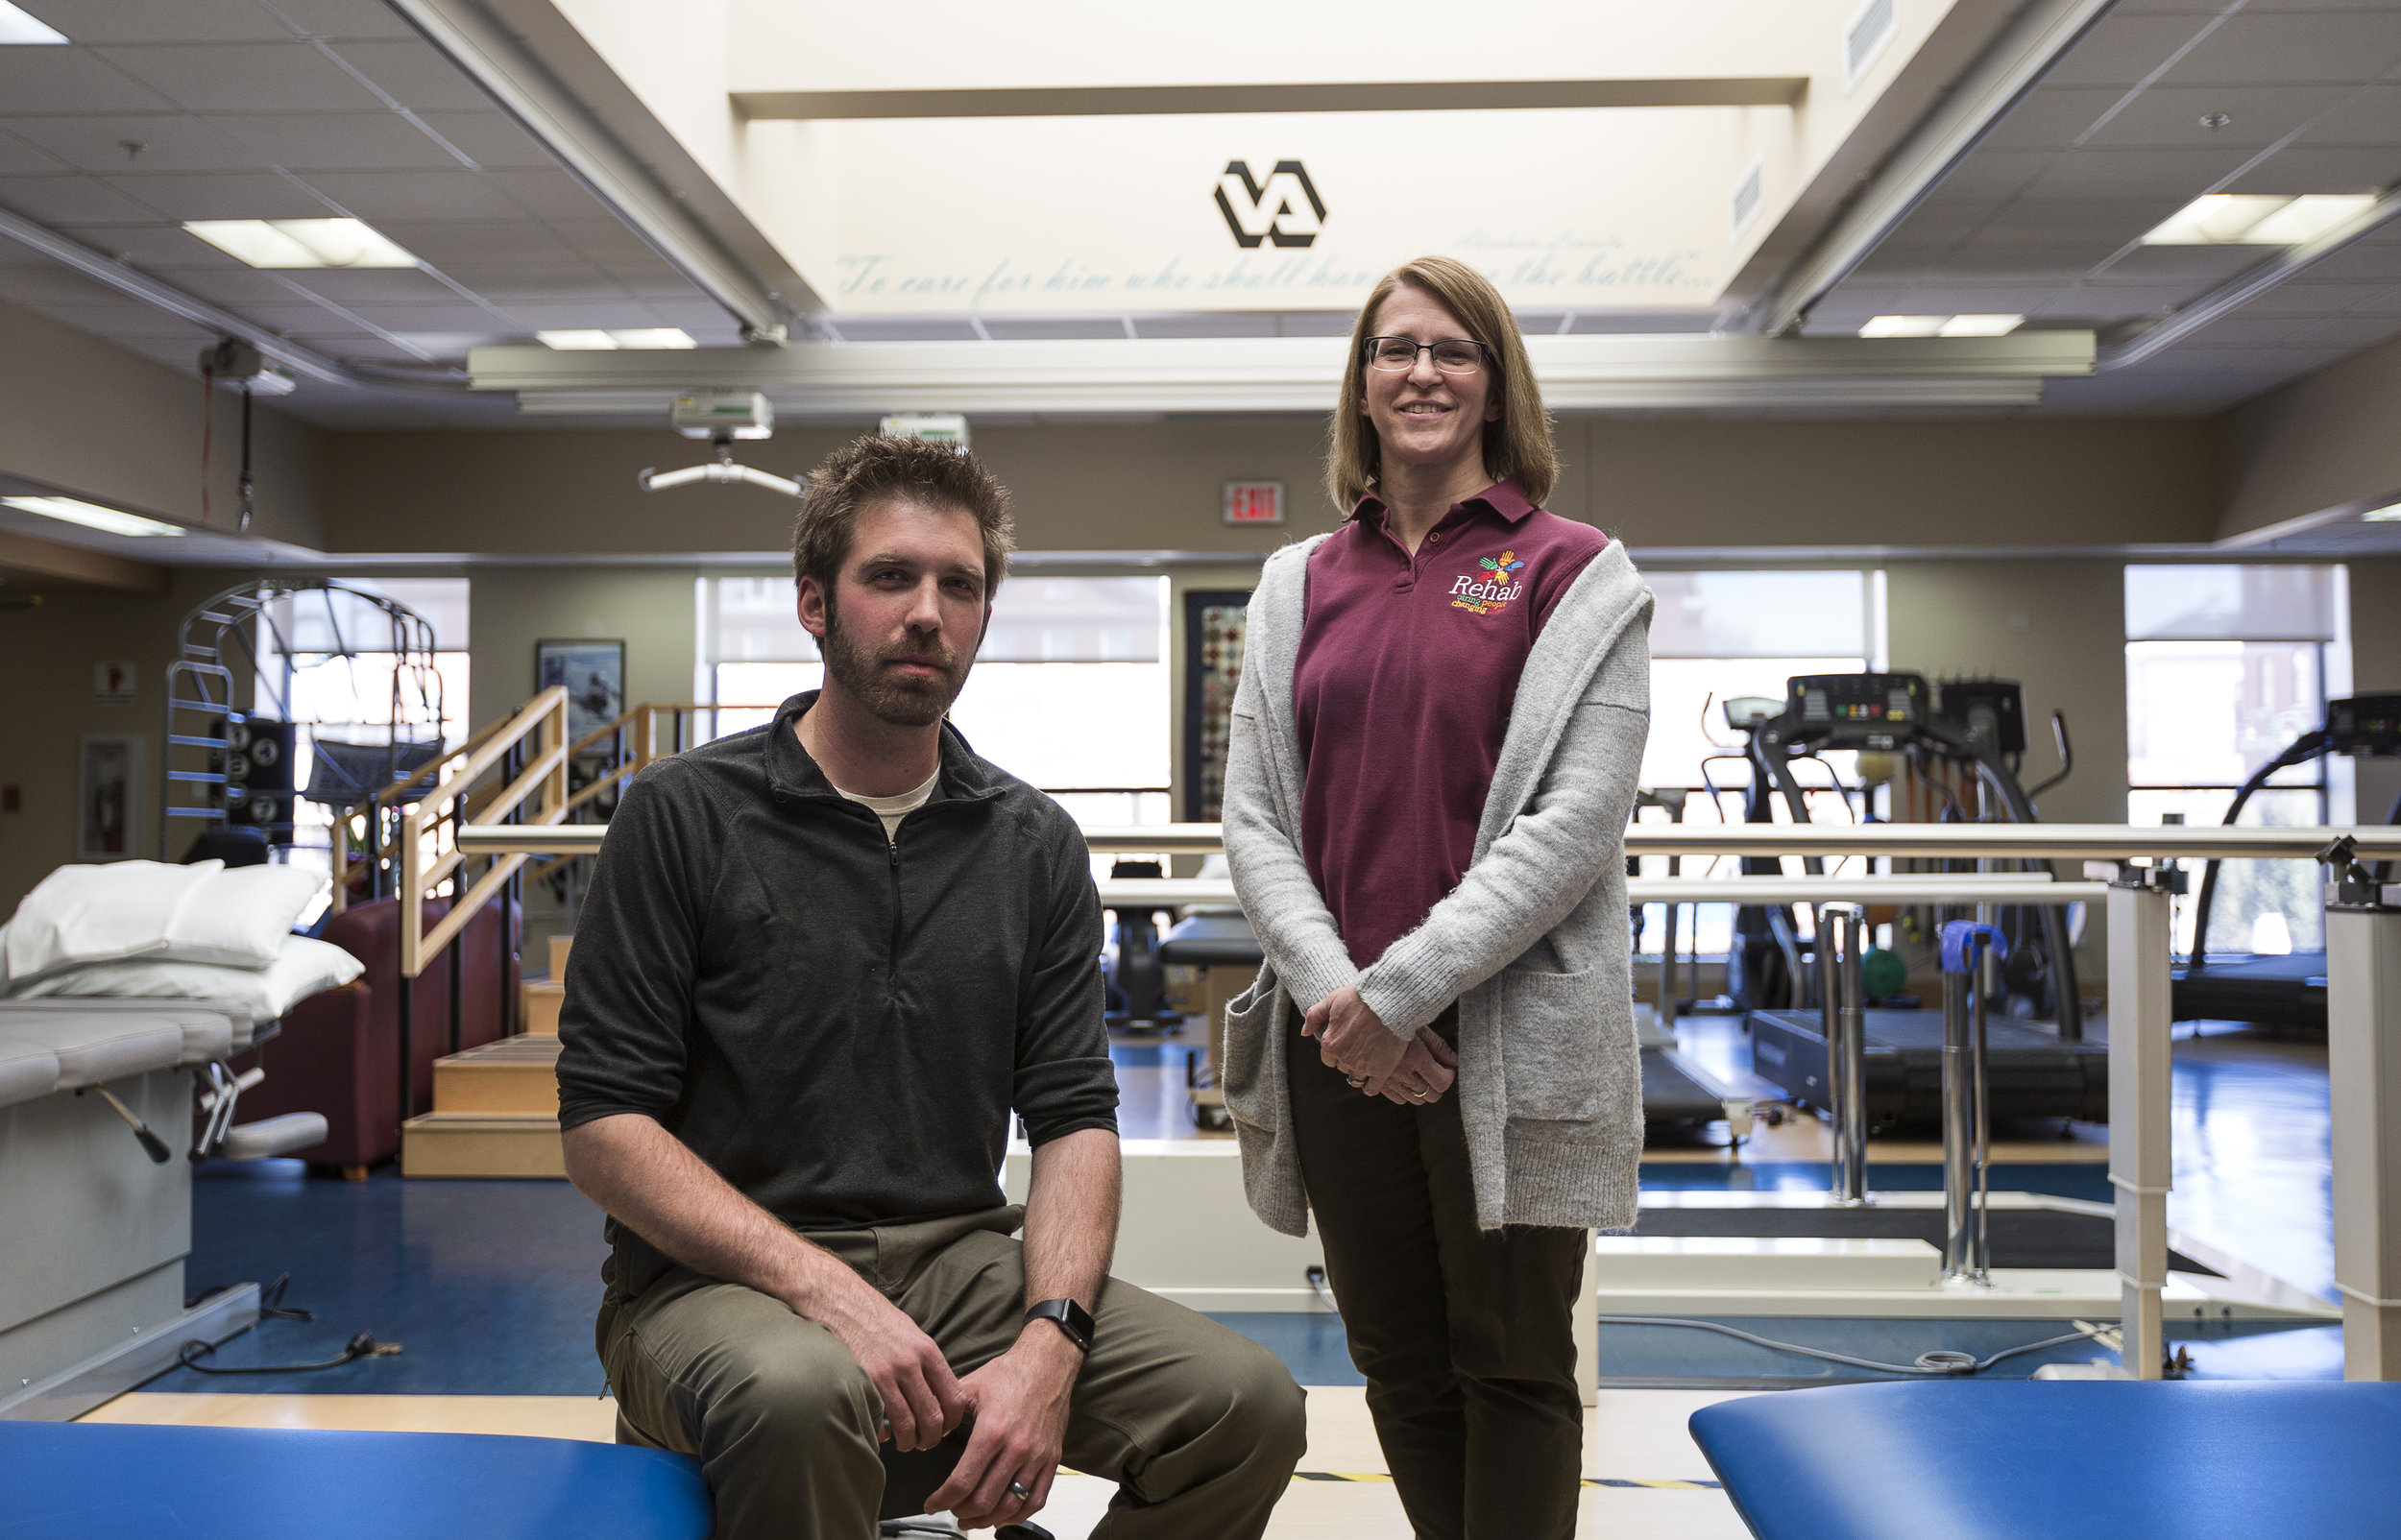 Dr. Bradley Schaack, DPT and Dr. Kristin Eneberg-Bolden, DPT pose for a portrait inside the Physical Therapy wing of the Tomah VA Facility in Tomah, Wisconsin, Monday, April 23, 2018.